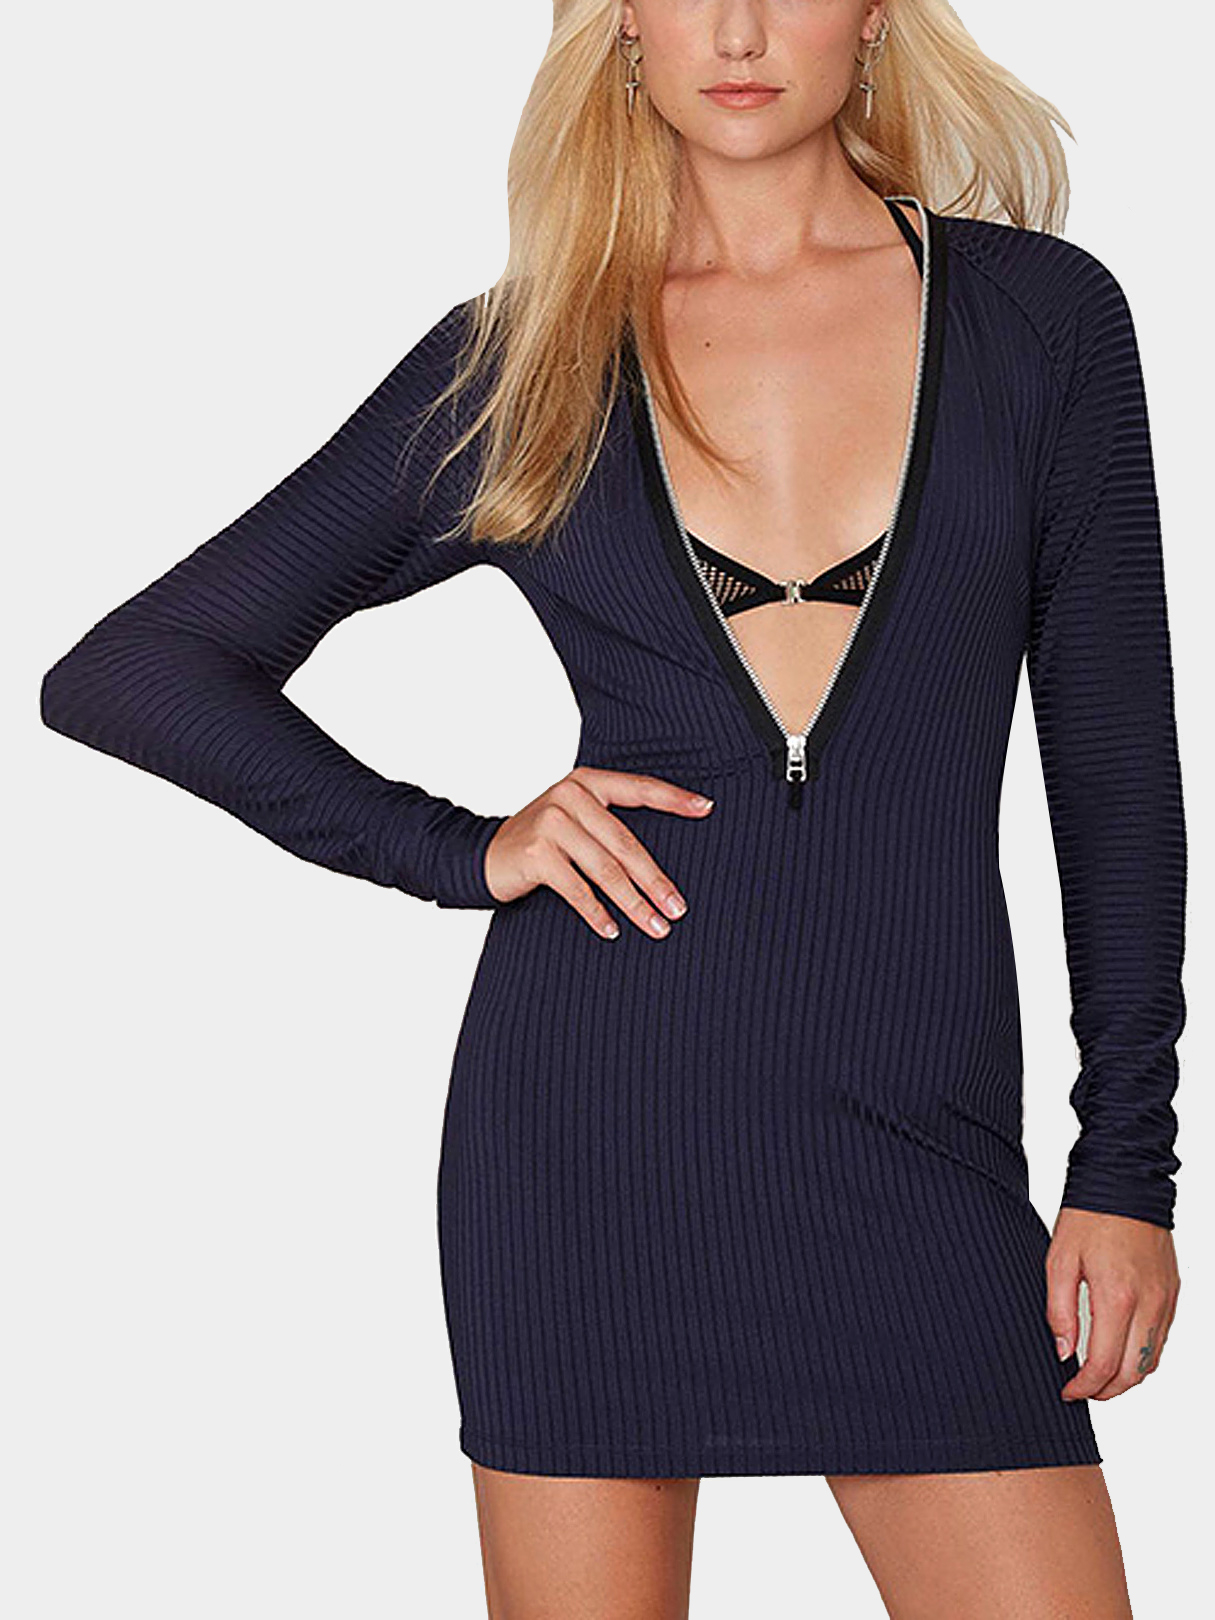 Zipper Ribbed Knit Mini Dress In Navy